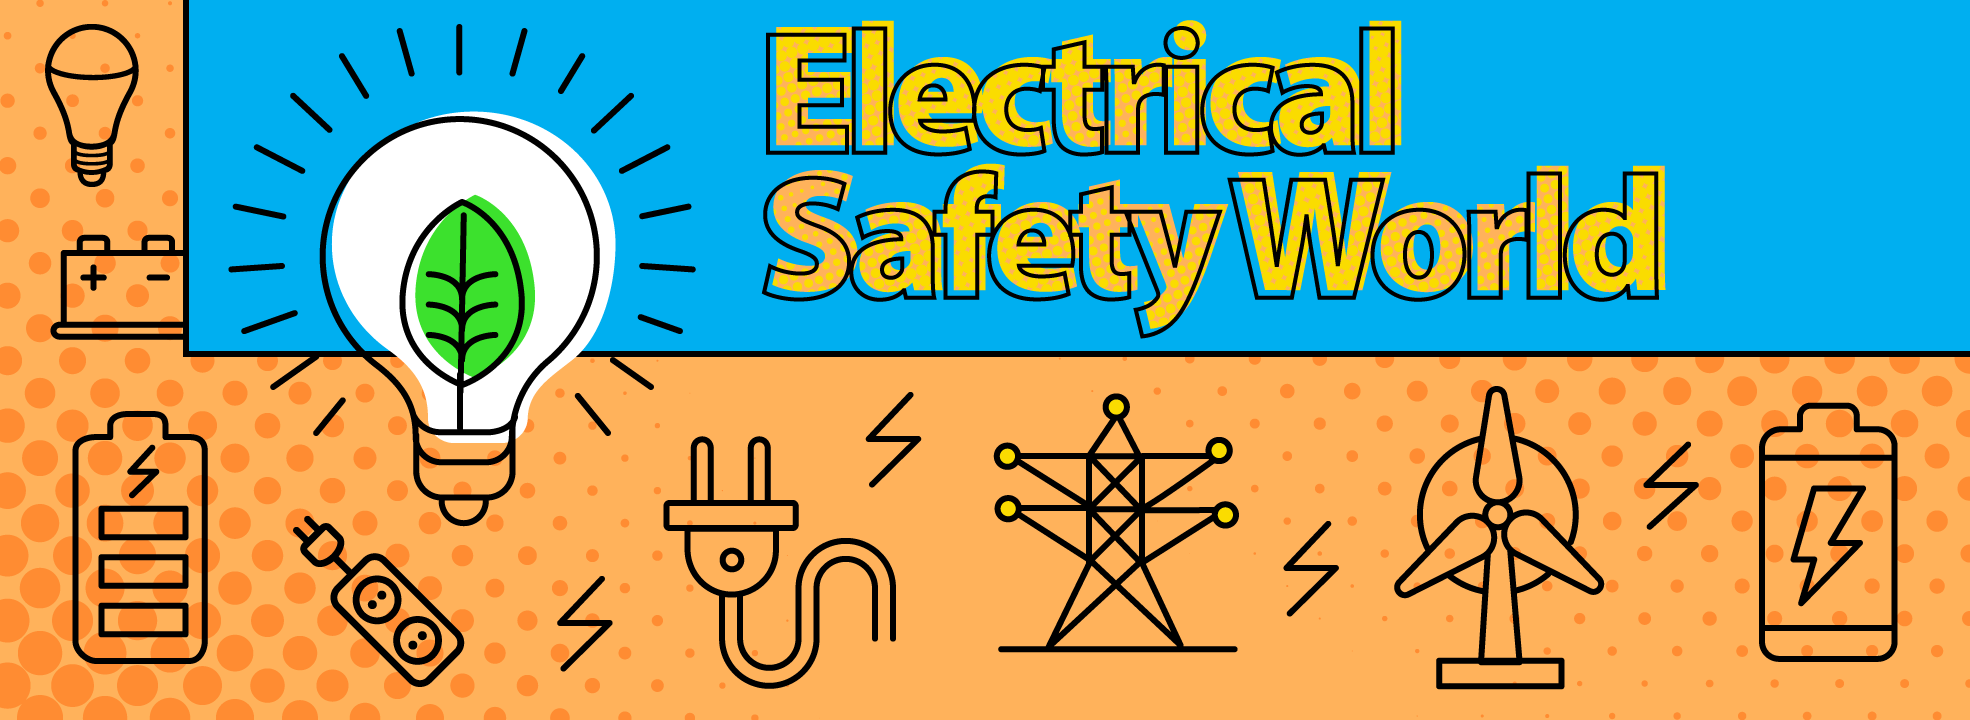 Electrical Safety World